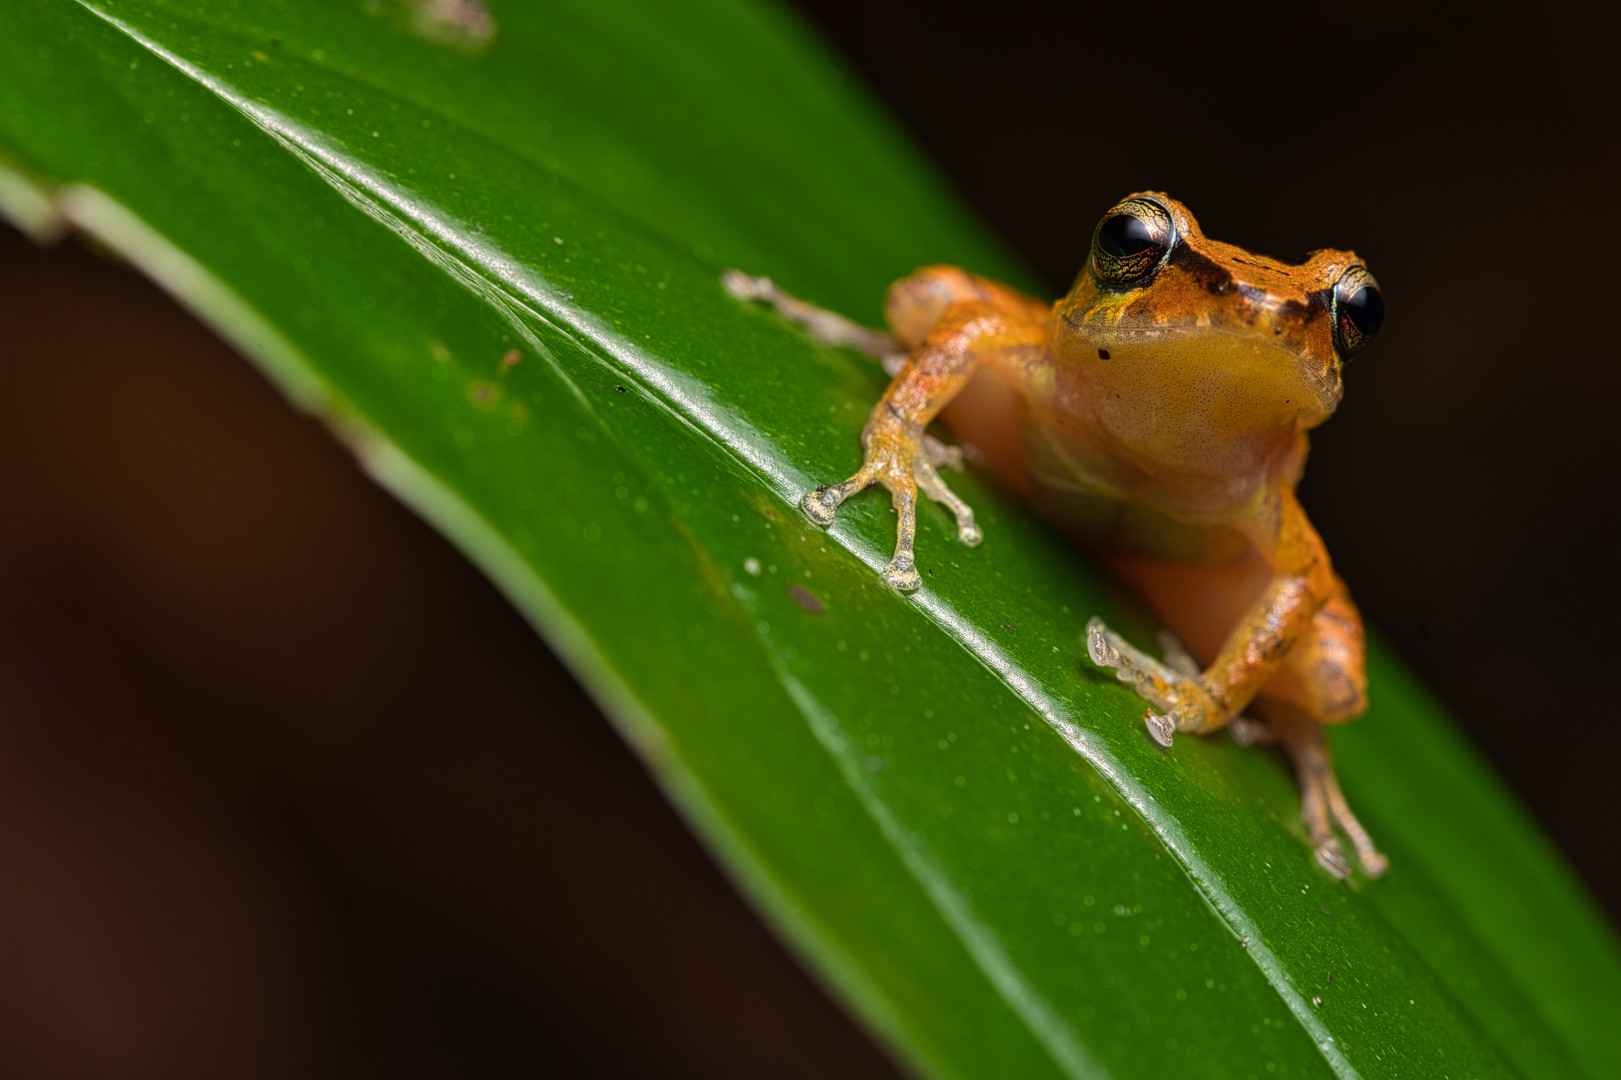 Pristimantis sp. - Municipio de Colombia, Huila